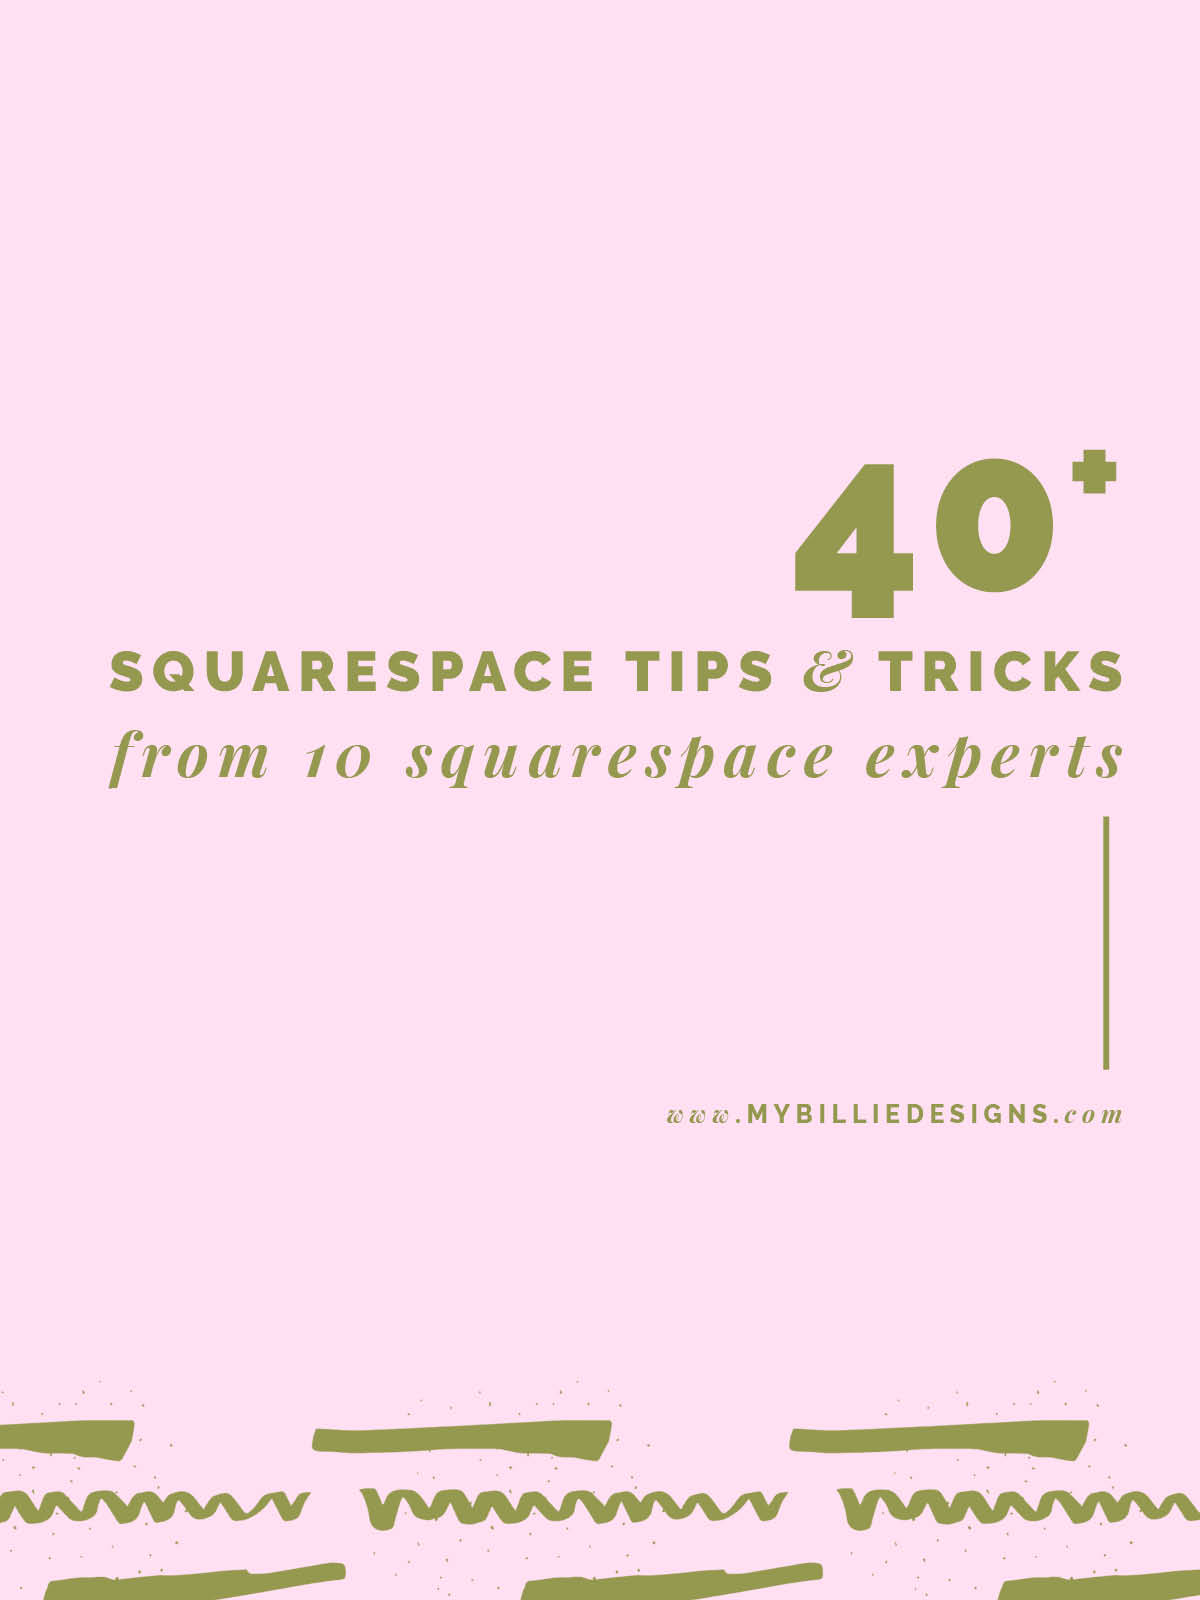 40+ Squarespace Tips & Tricks From 10 Squarespace Experts